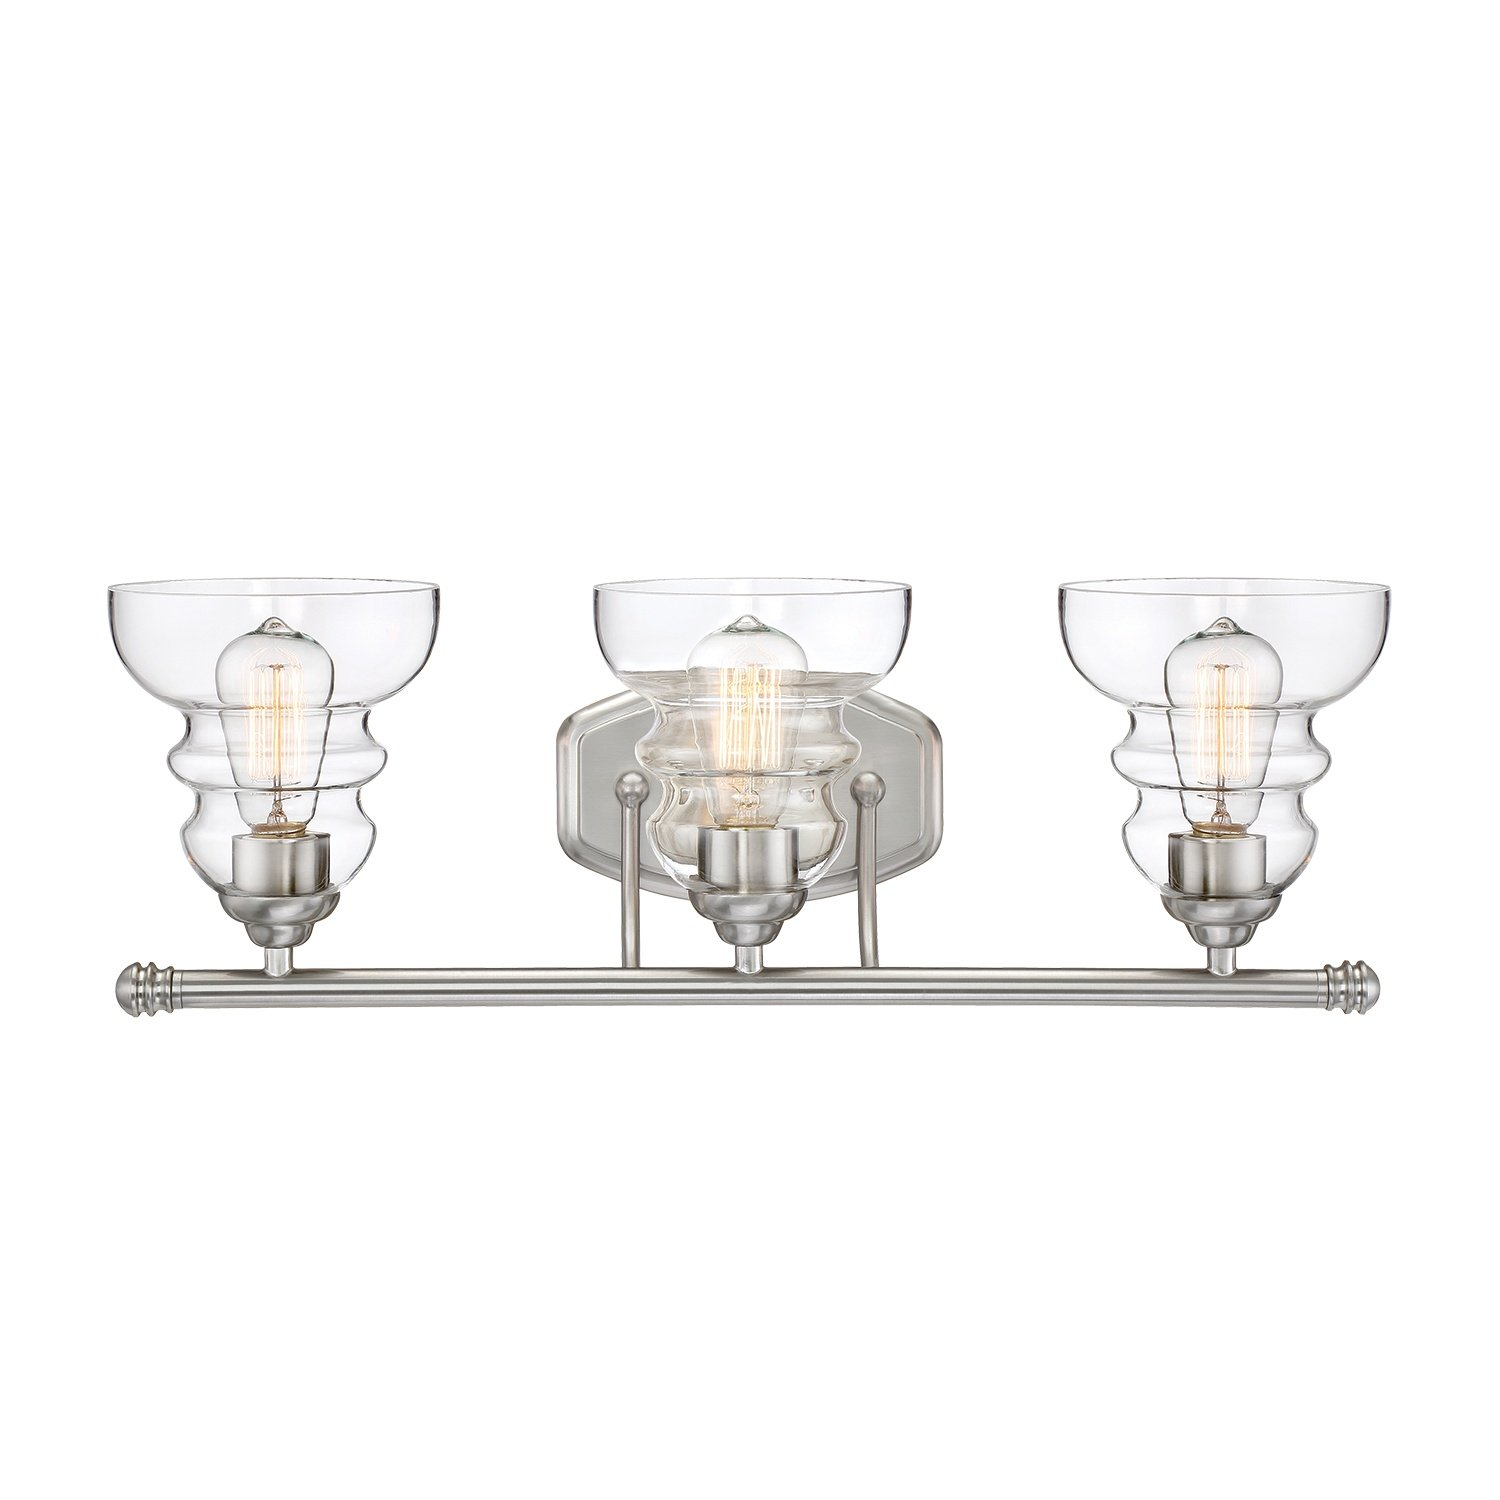 Millennium lighting 7333 sn millenniumthree light vanity 3 light millennium lighting 7333 sn millenniumthree light vanity 3 light bath vanity in satin nickel amazon aloadofball Gallery